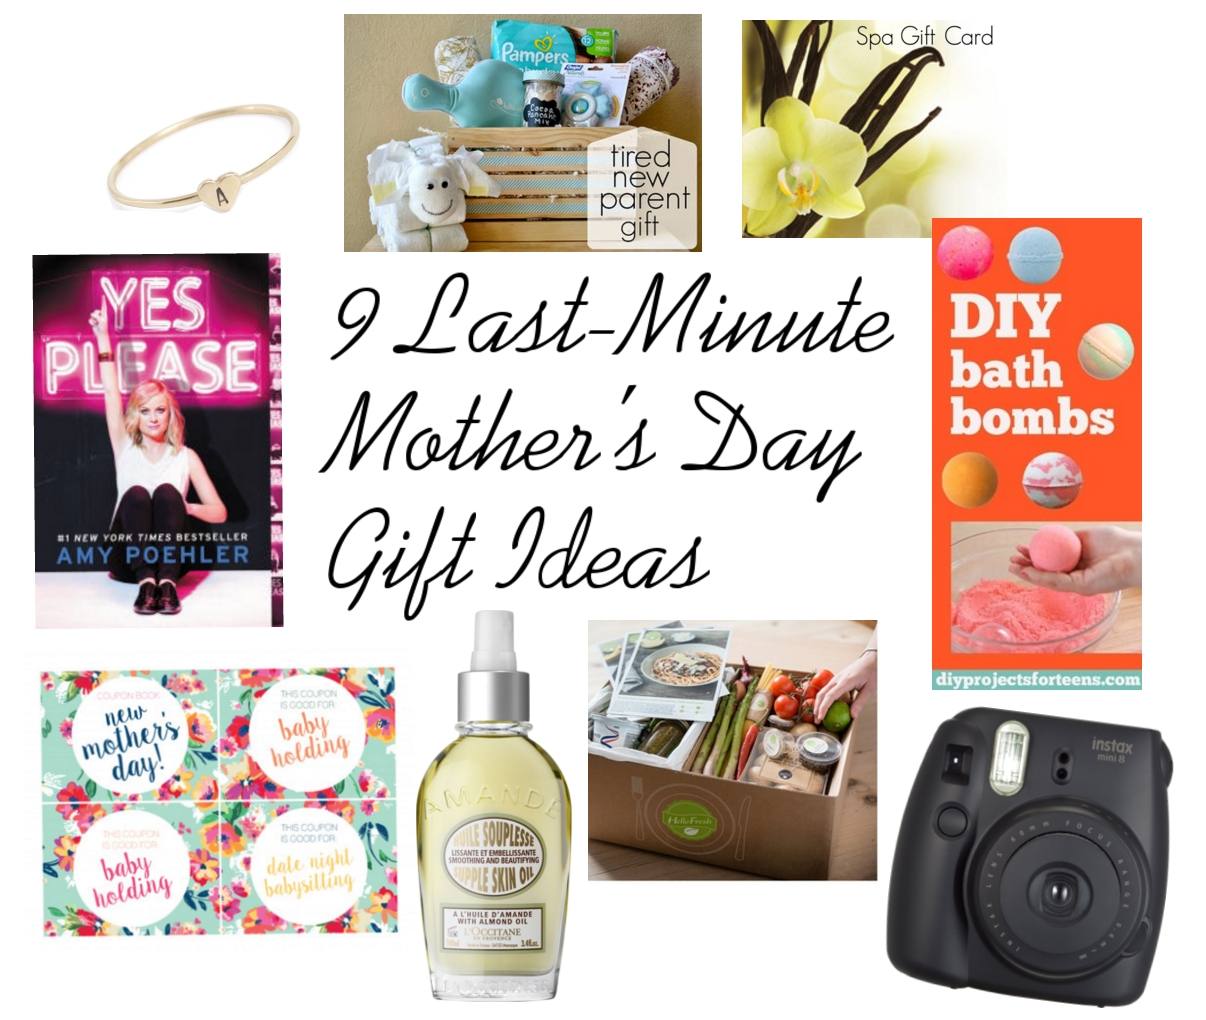 10 Famous Last Minute Gift Ideas For Mom 9 last minute mothers day gift ideas for new moms owlet blog 3 2021